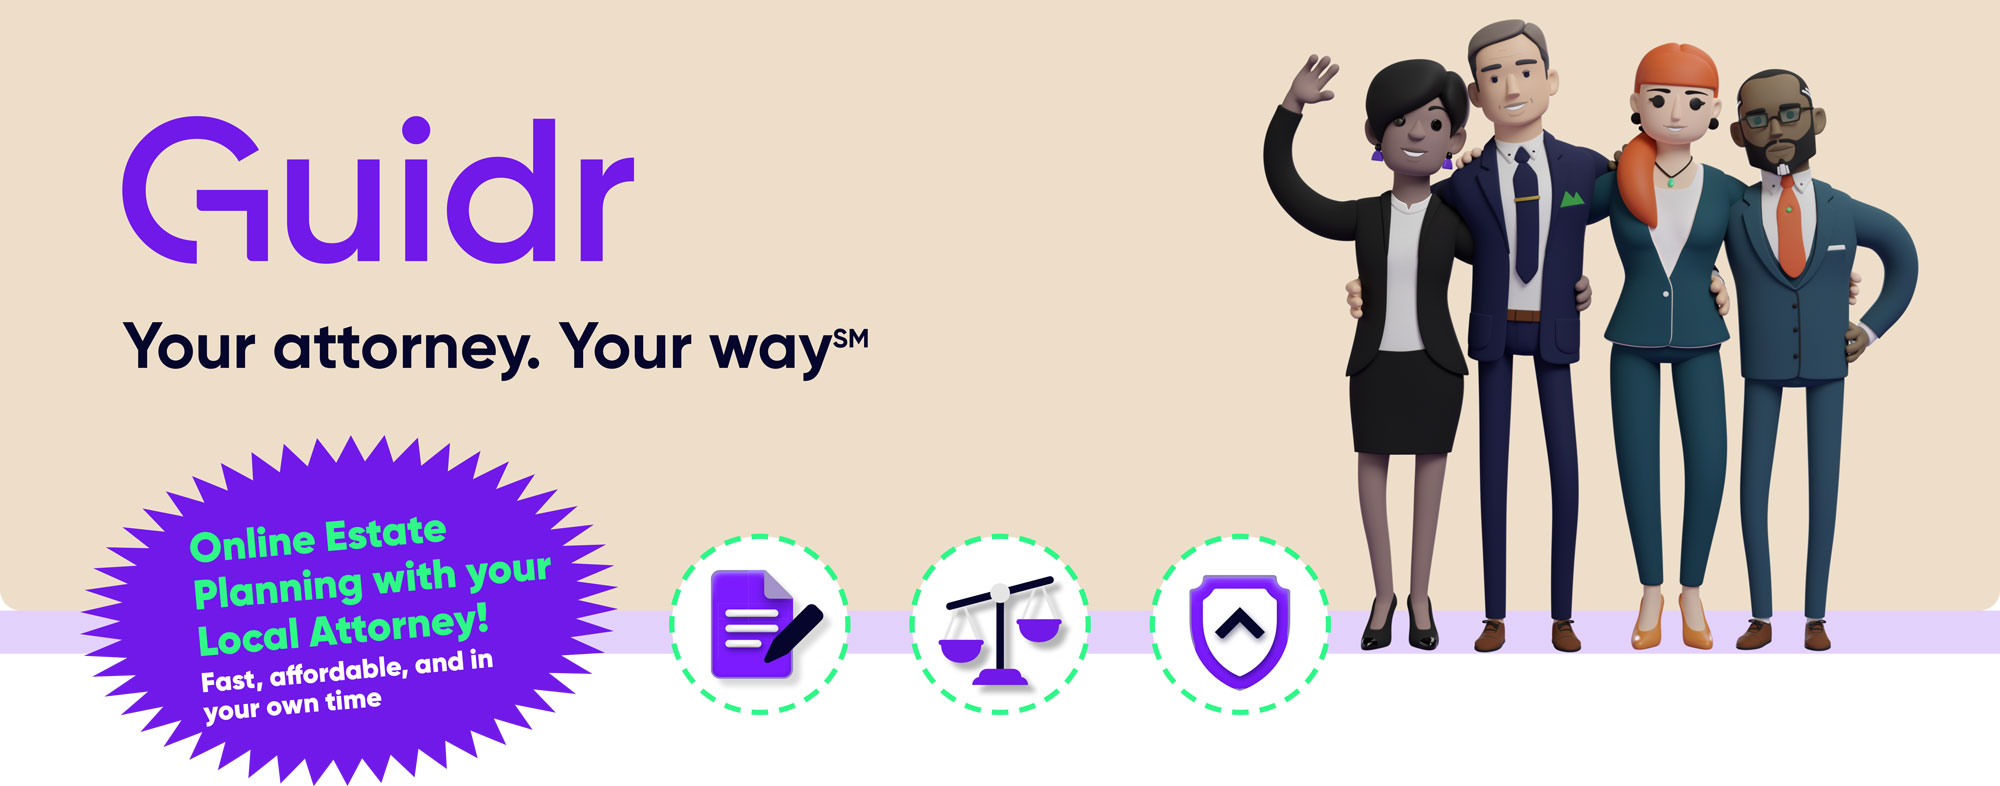 Guidr: Online legal documents with your local attorney